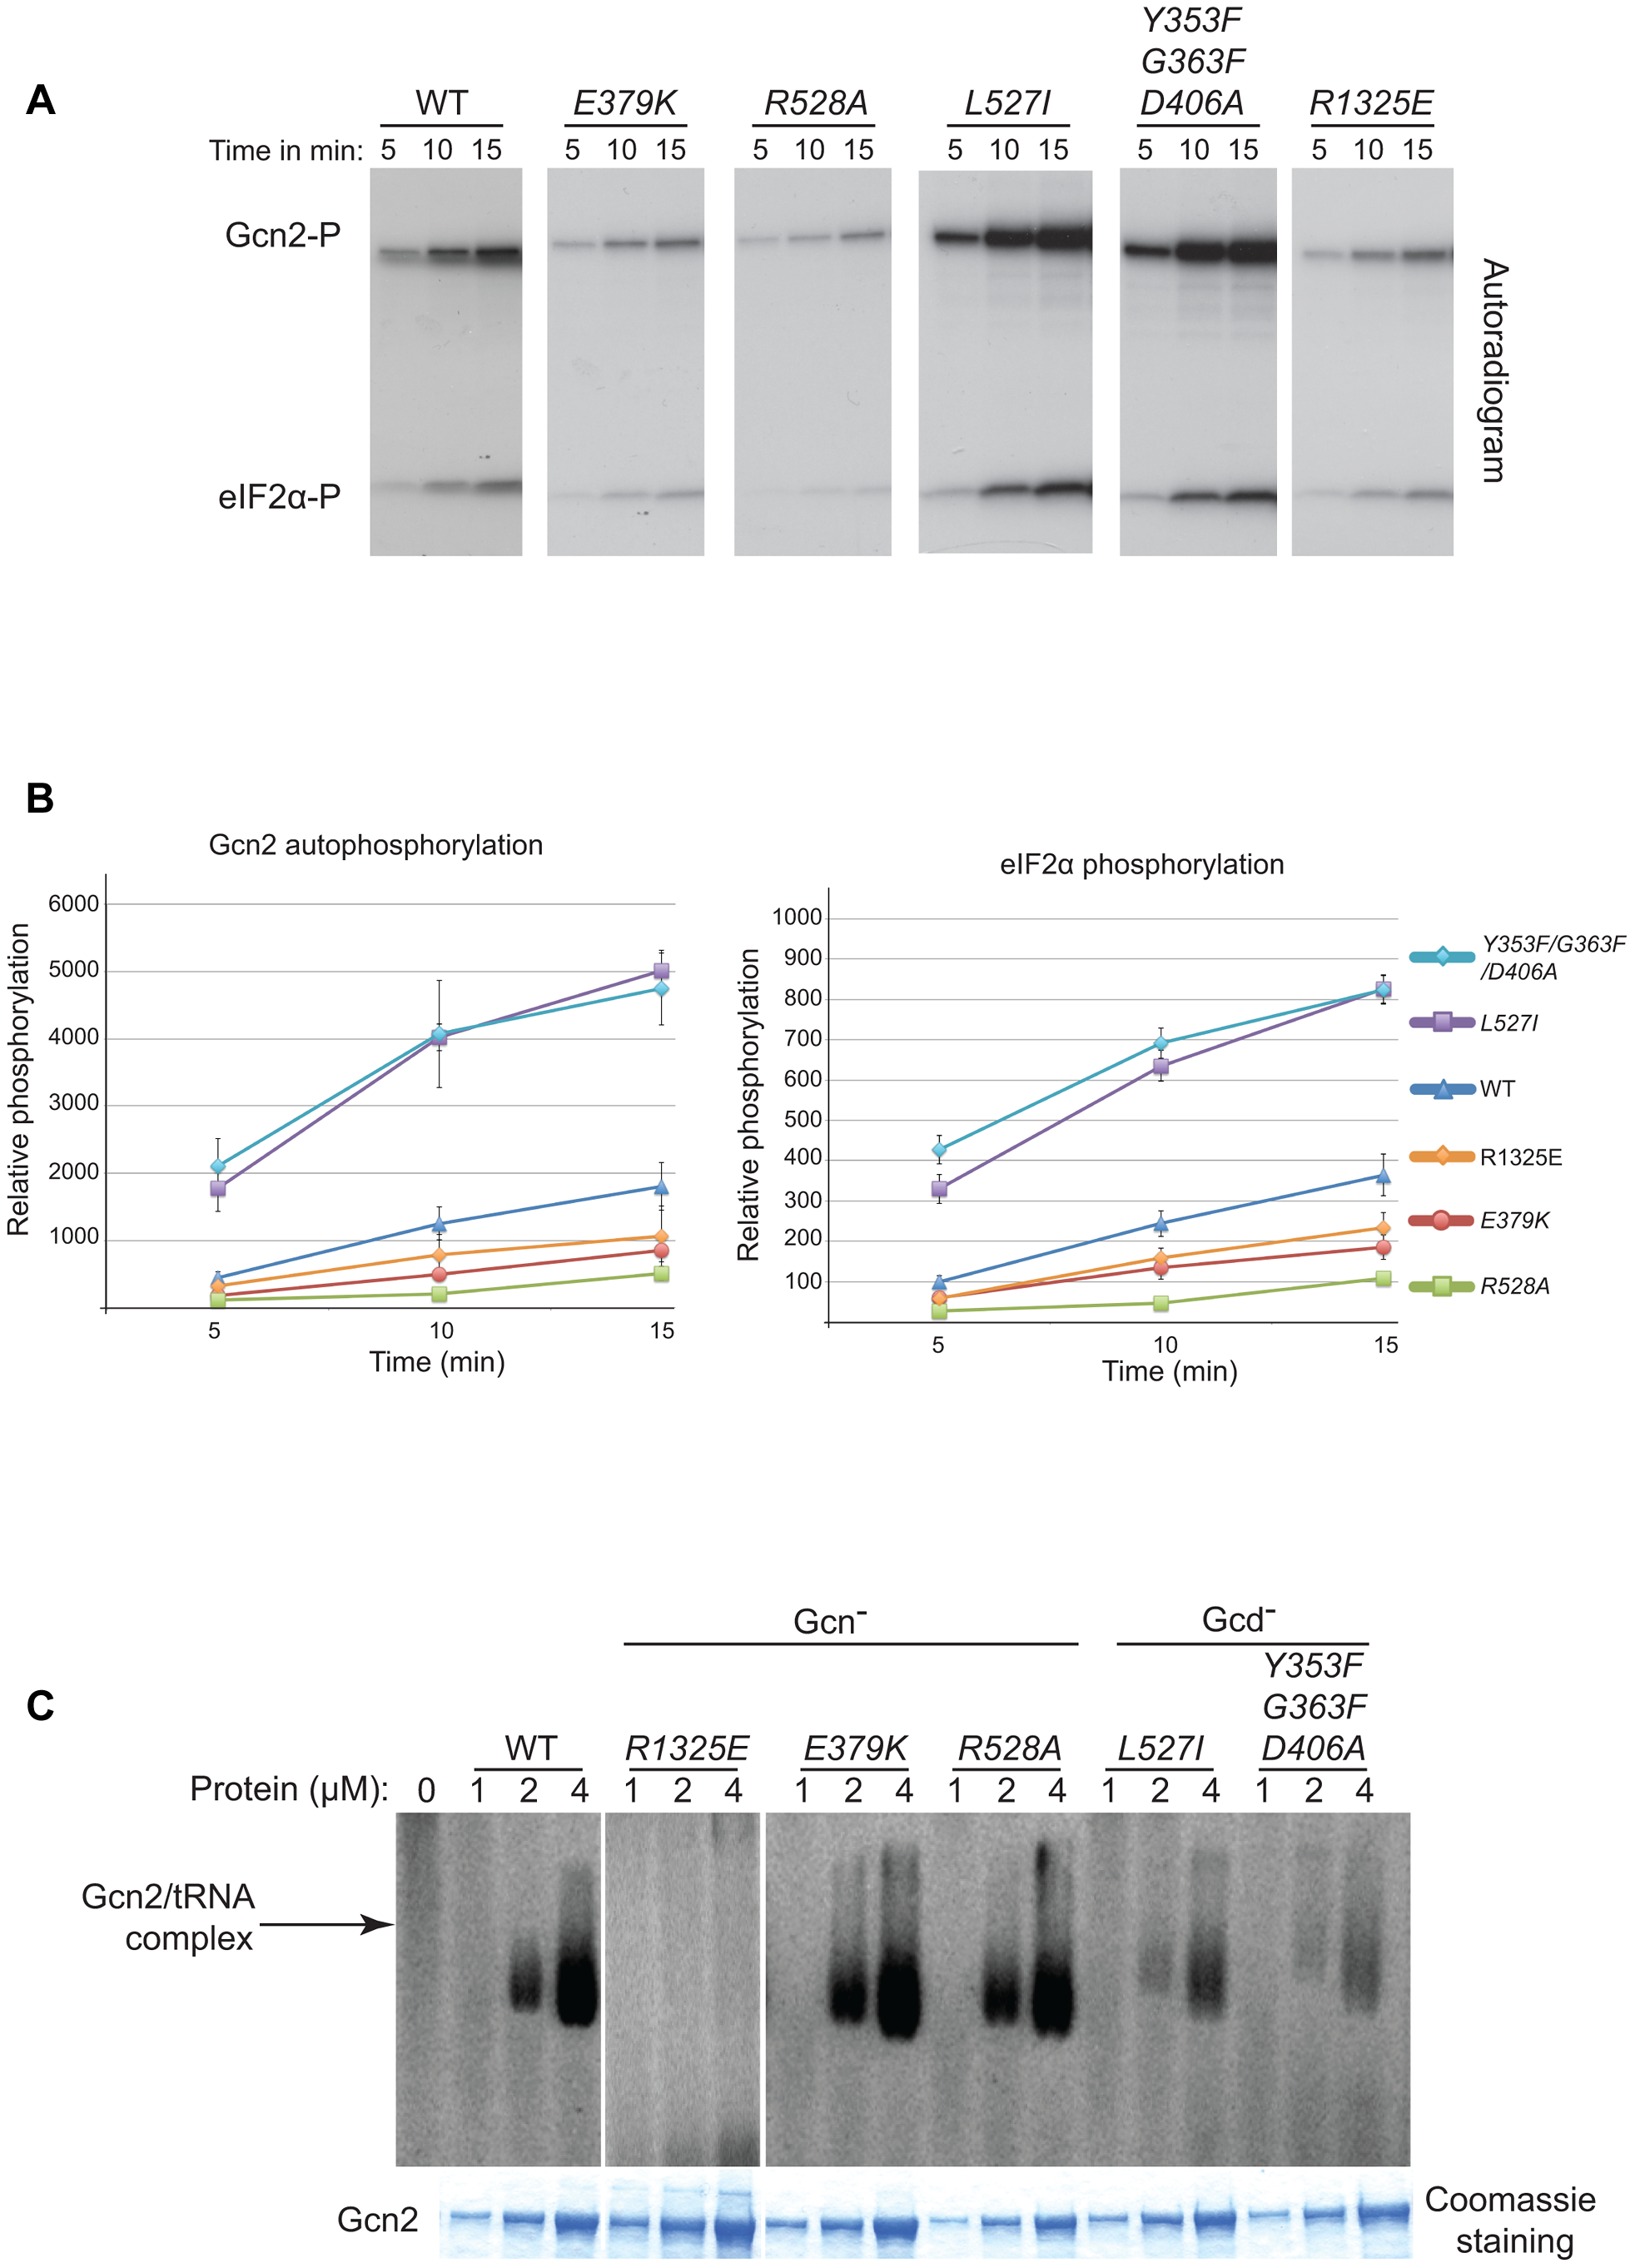 Effect of YKD substitutions on kinase activity and tRNA binding by purified Gcn2 <i>in vitro</i>.